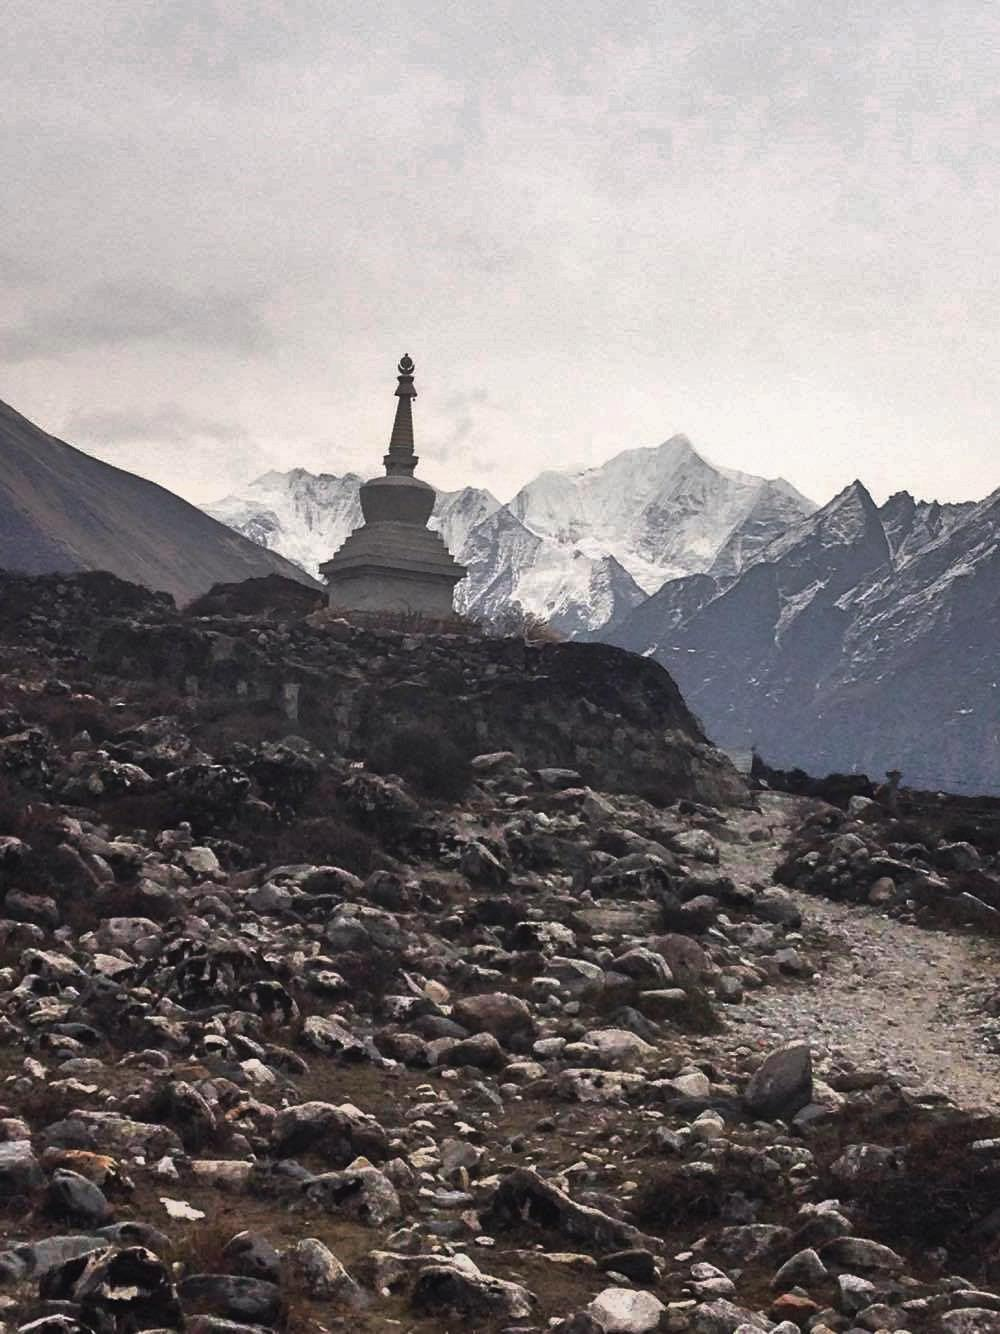 Langtang_Stupa_and_mountains_April_2016_Adventure_Alternative_Nepal.jpg